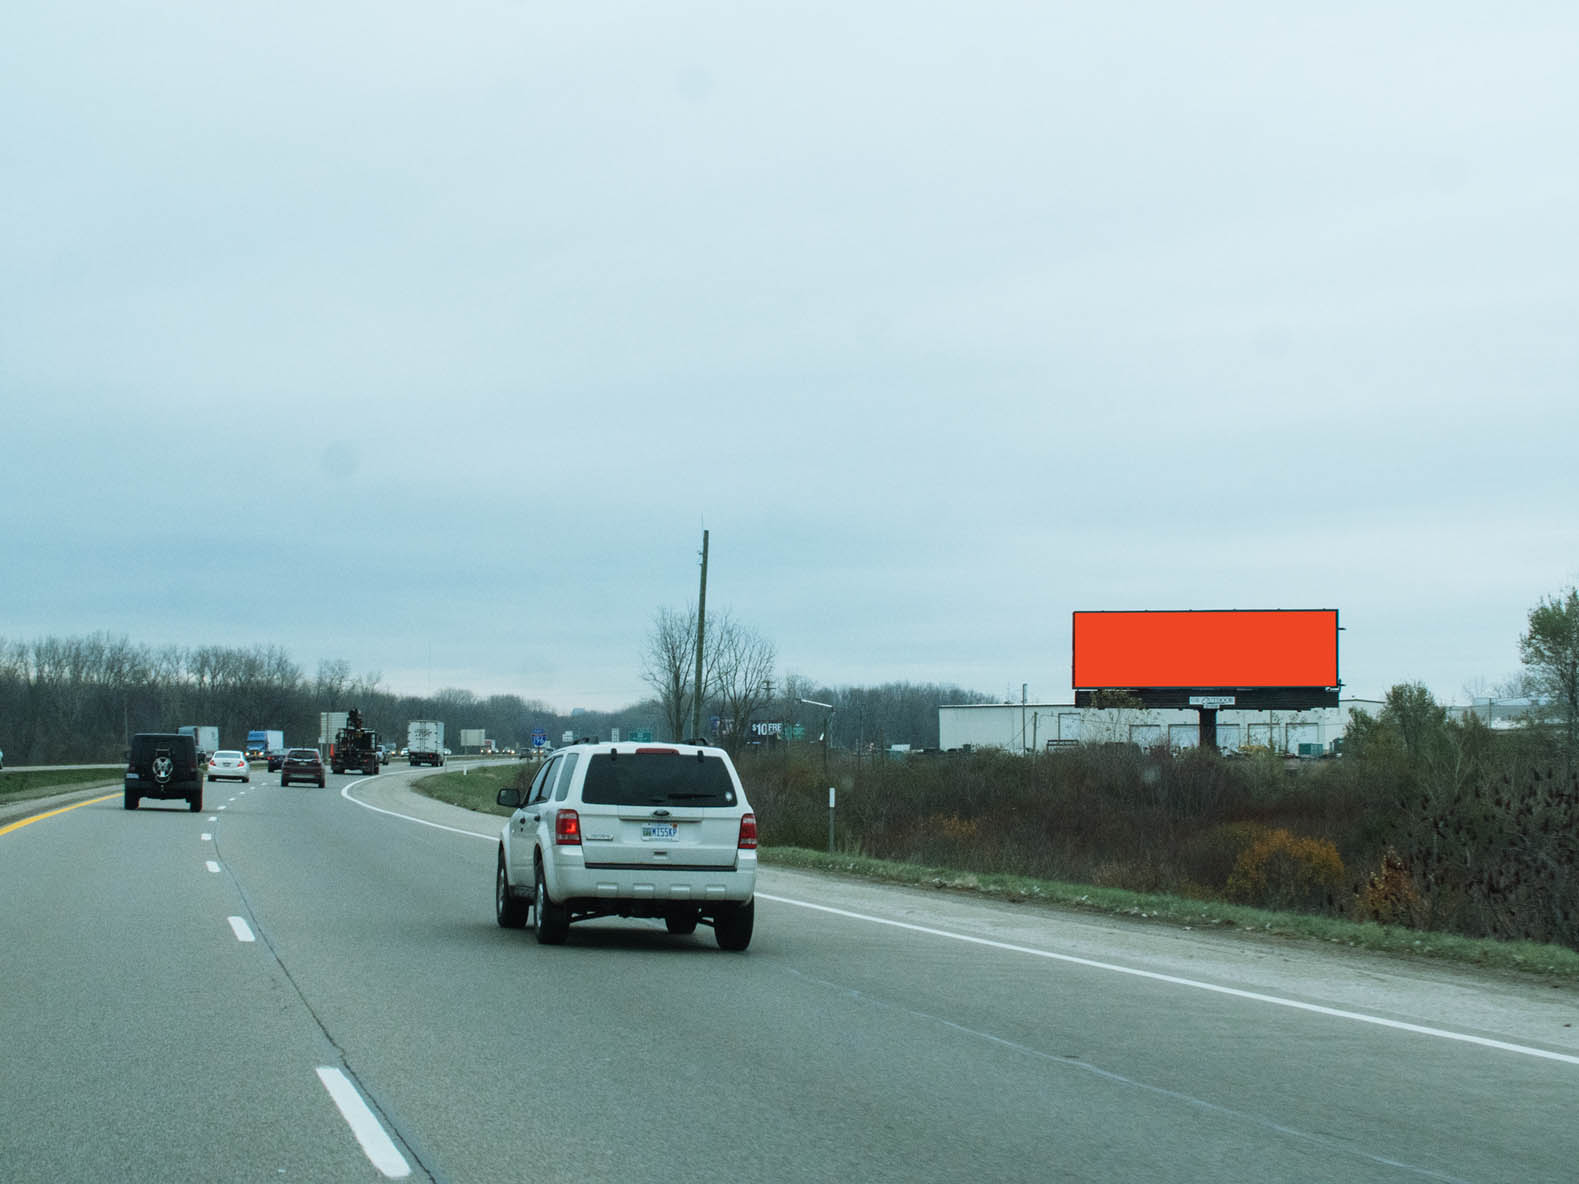 Billboard 327 West (14 x 48) - Geopath: 30655442